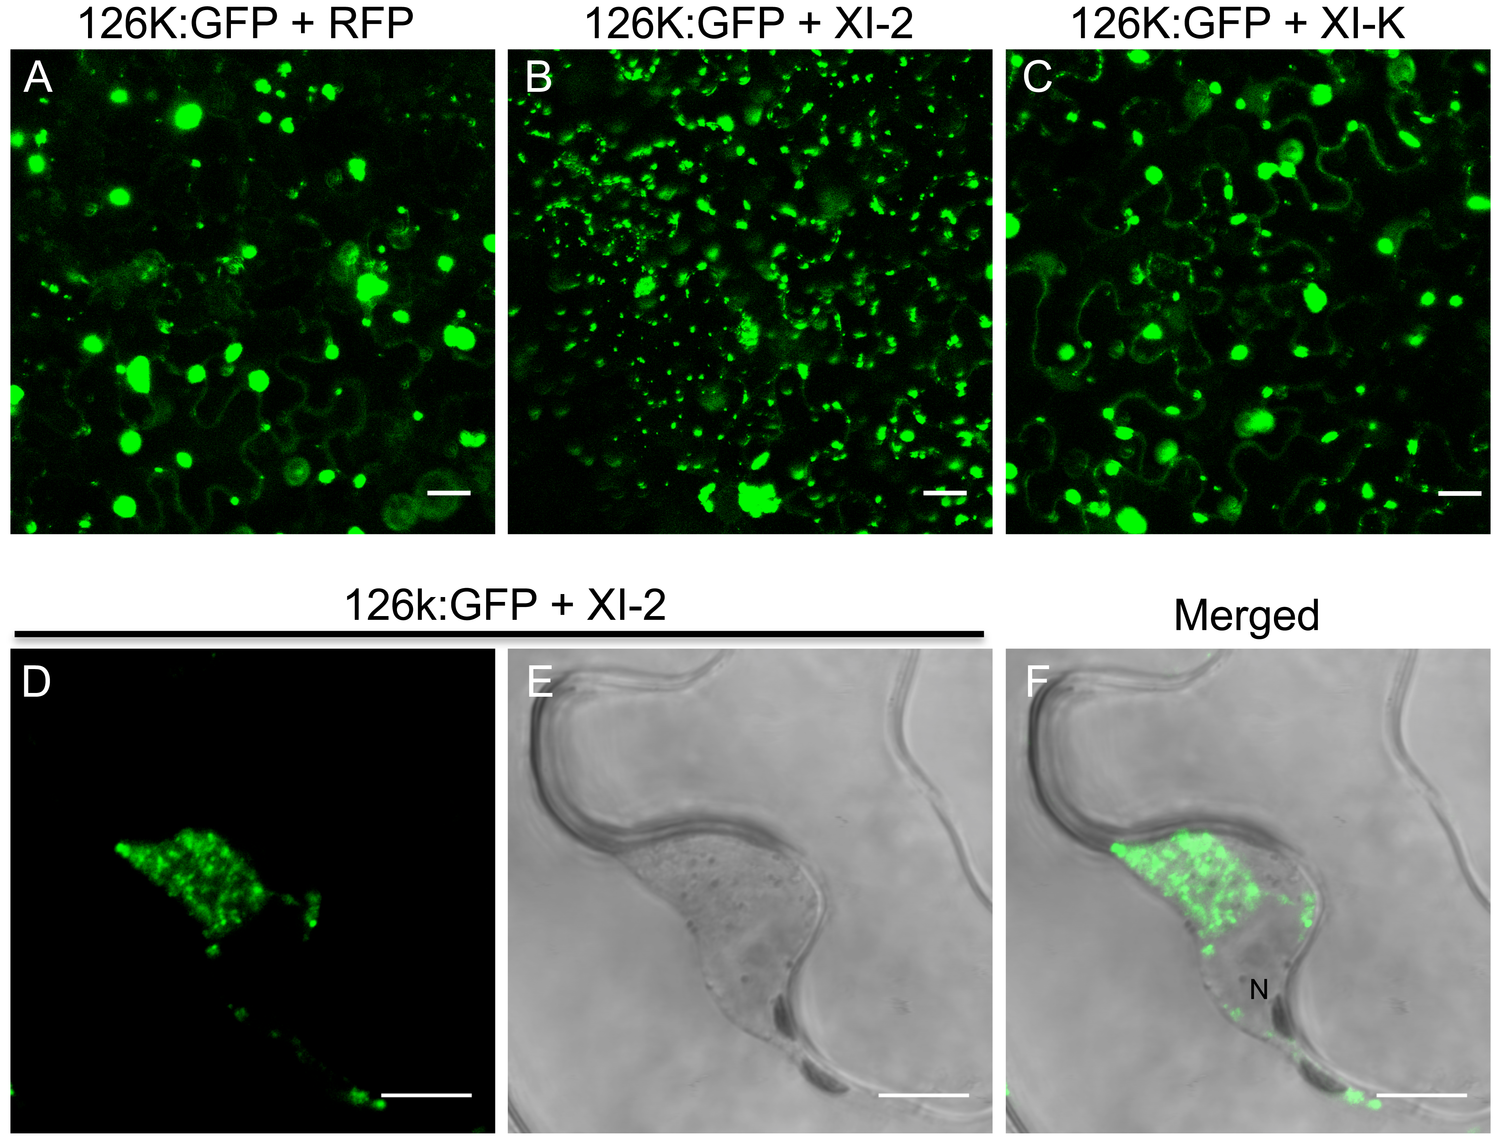 Inhibition of myosin XI-2 disrupts the normal subcellular localization of expressed 126k:GFP.